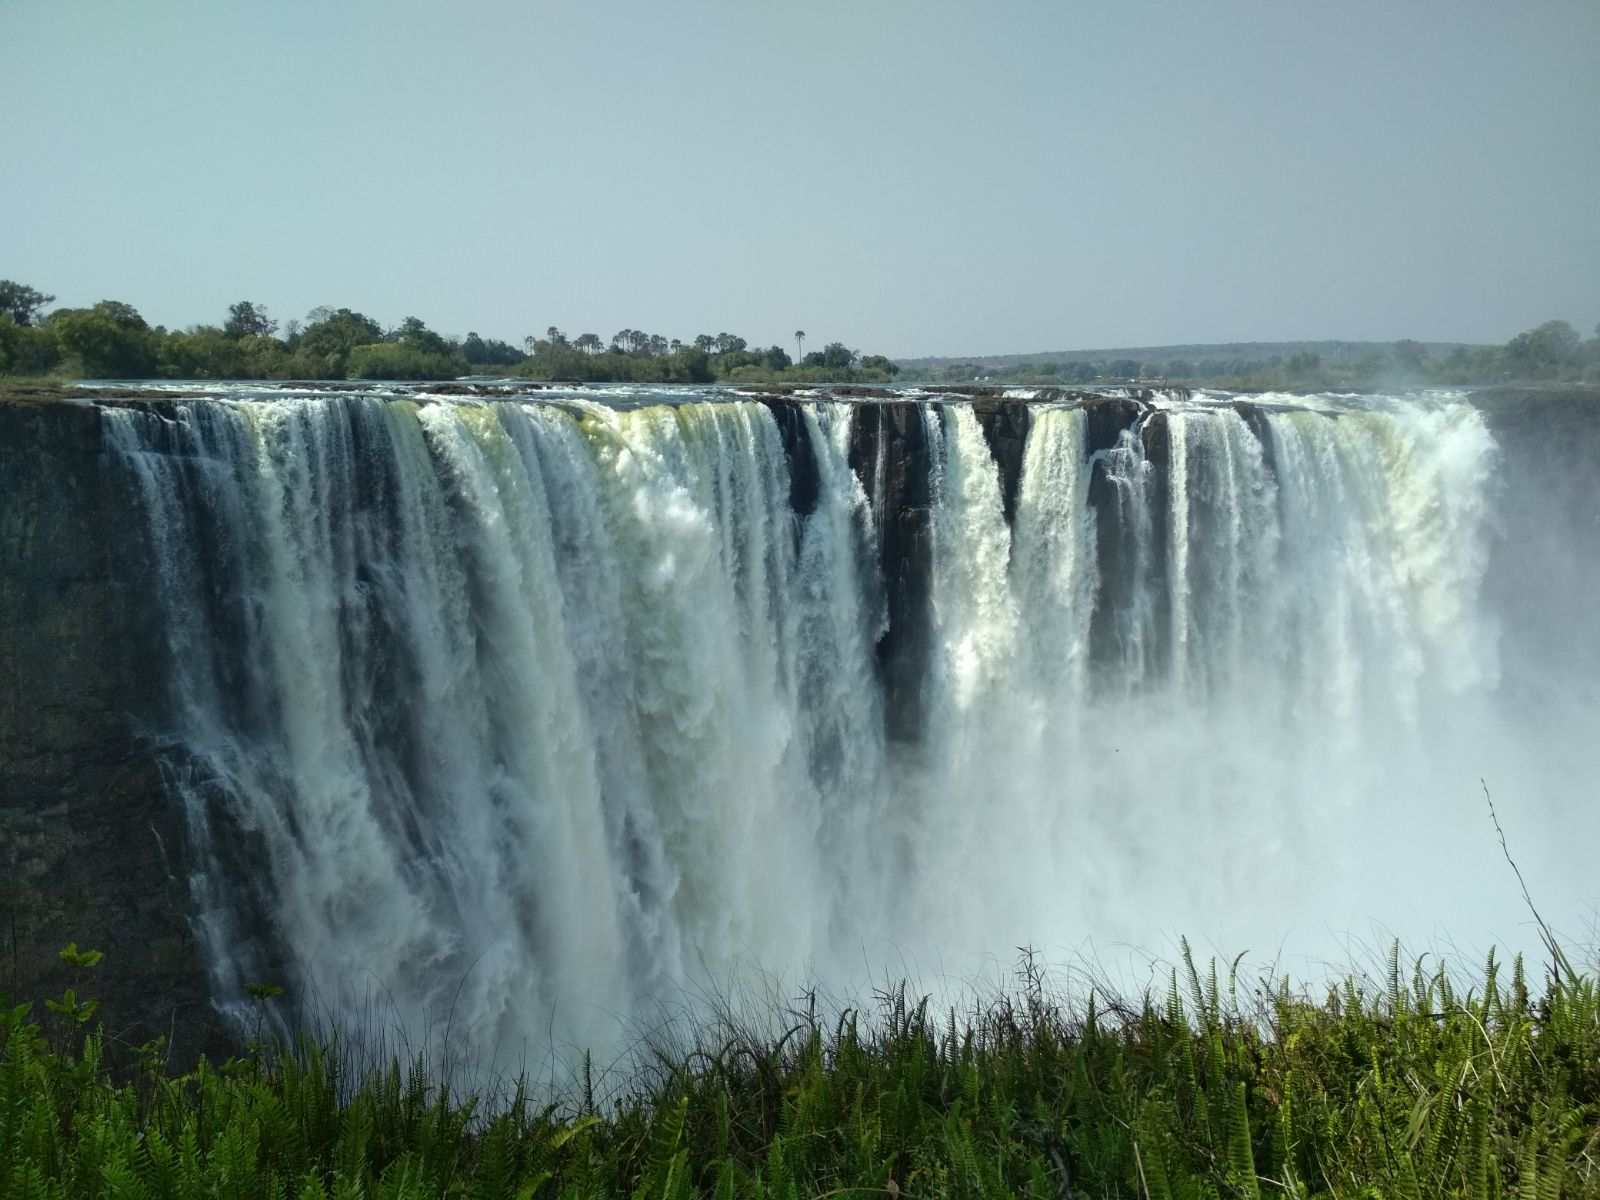 Africa is a dream destination to many tourists, so here in the list of the best african countries to visit in 2019. From Uganda, Zanzibar, Egypt, and others. #africa tourism #placestovisitinafrica #bestafricancountriestovisitin2019 #africa #traveltoafrica #zambia #victoriafalls